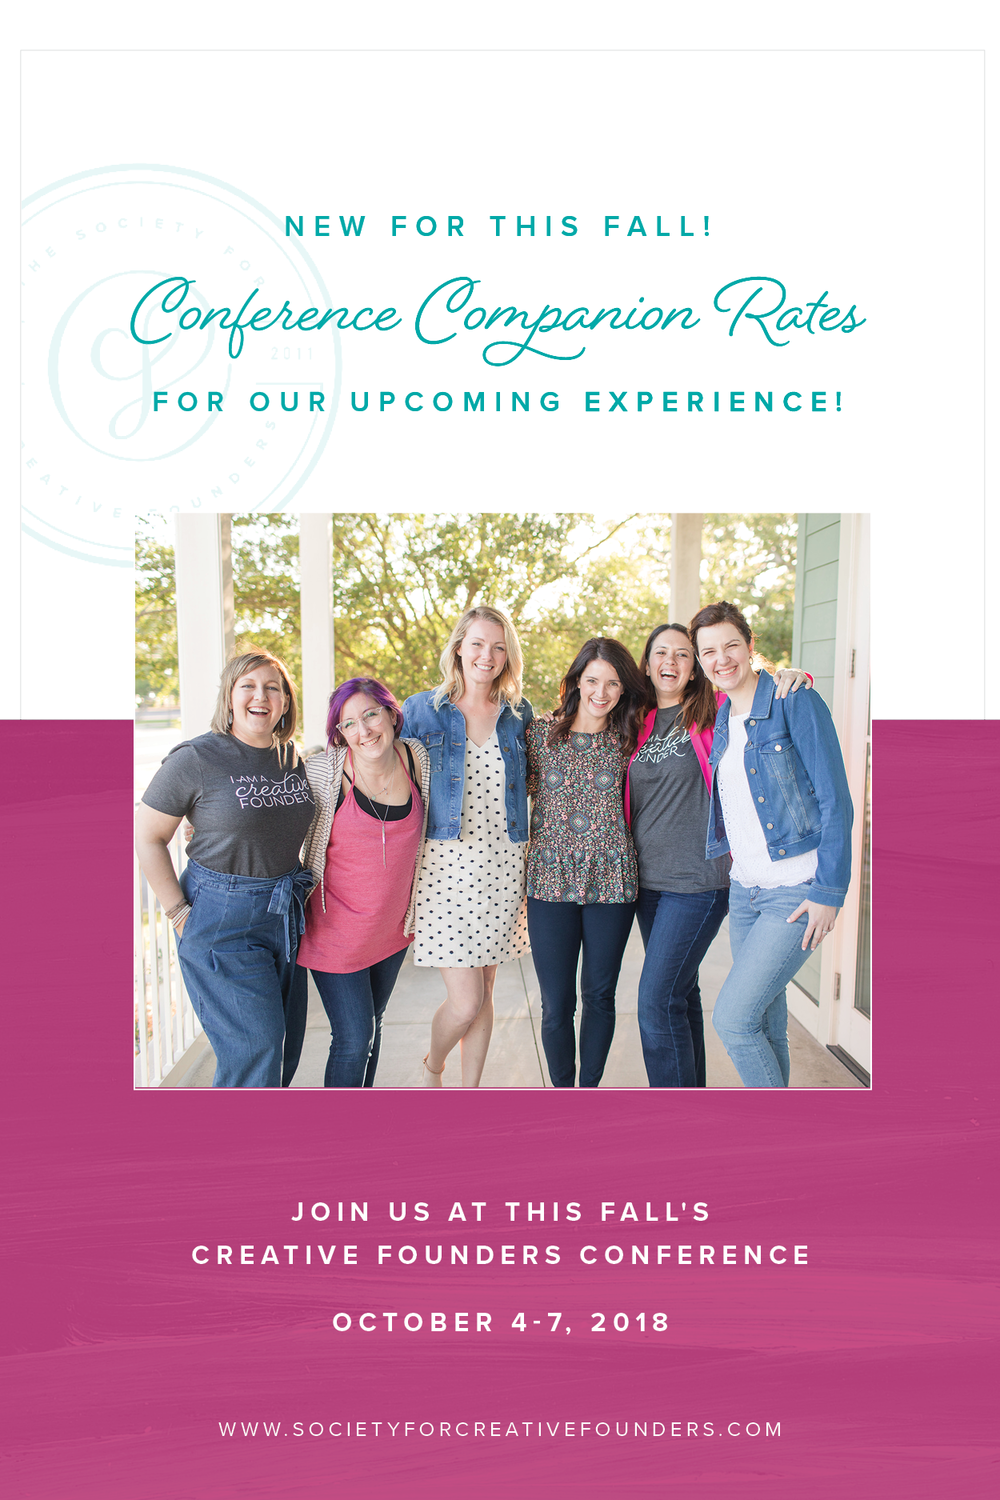 2018 Fall Creative Founders Conference - Conference Companion Rates Available!